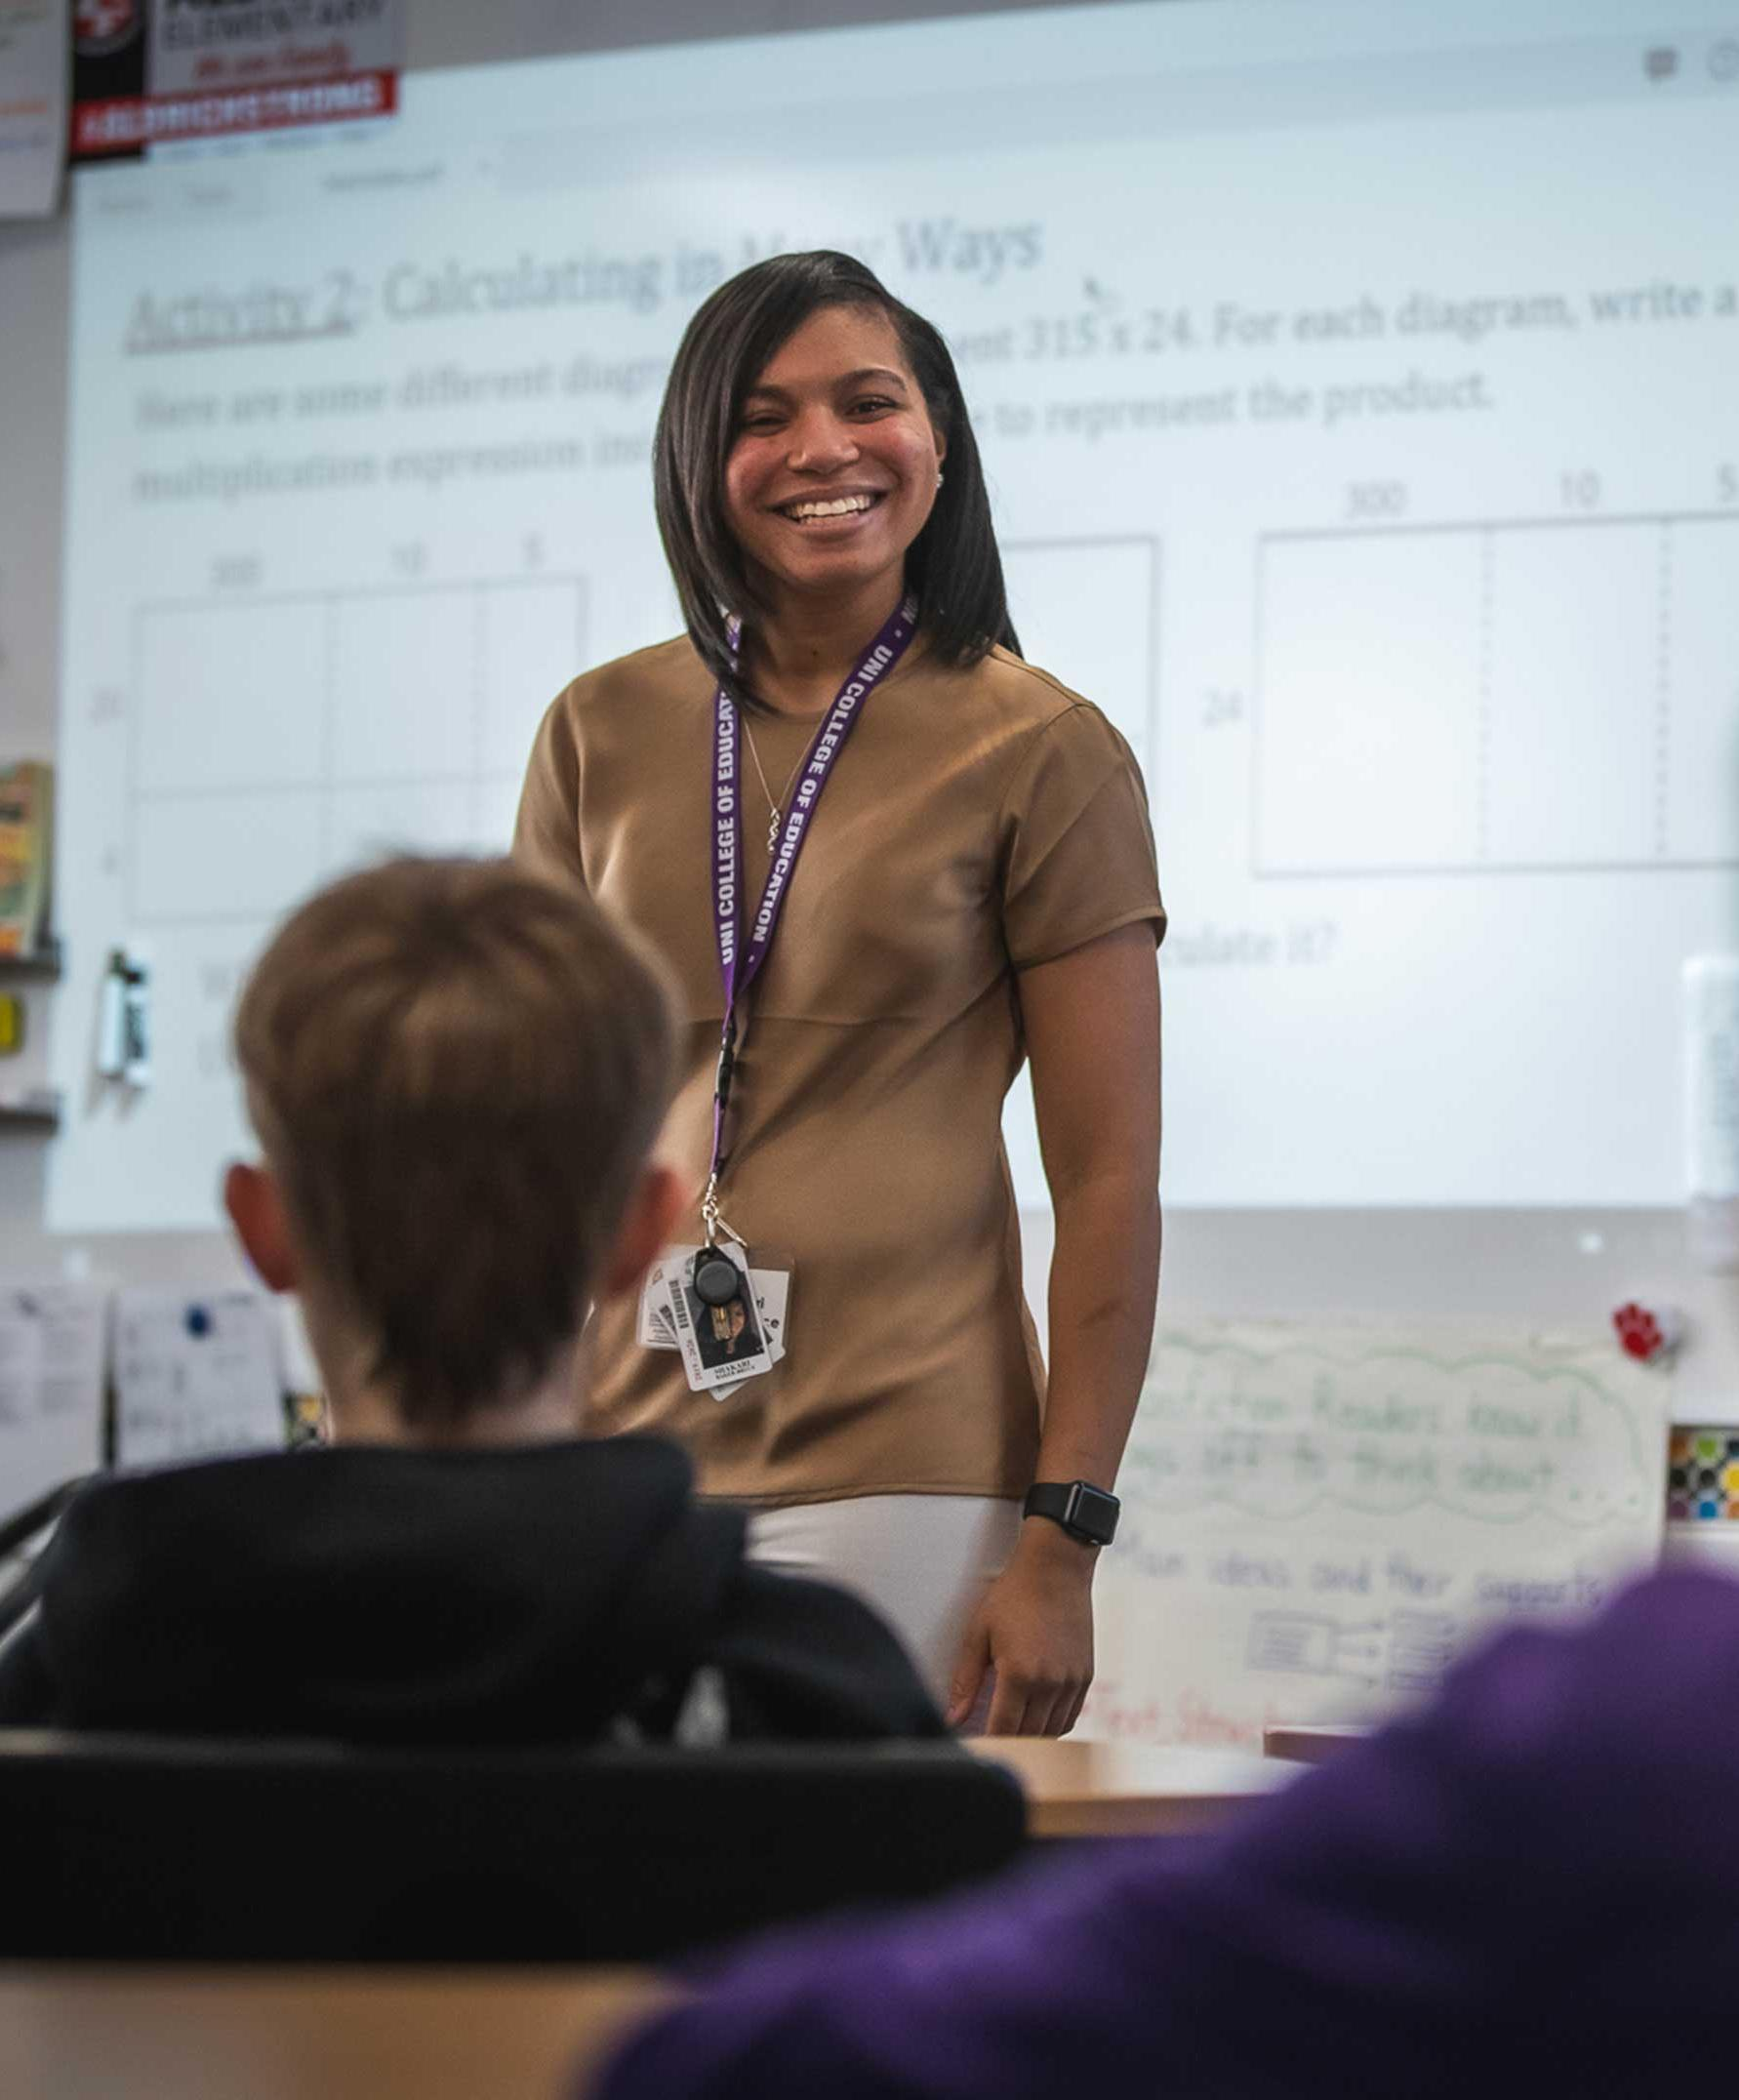 University of Northern Iowa teacher education student in front of classroom